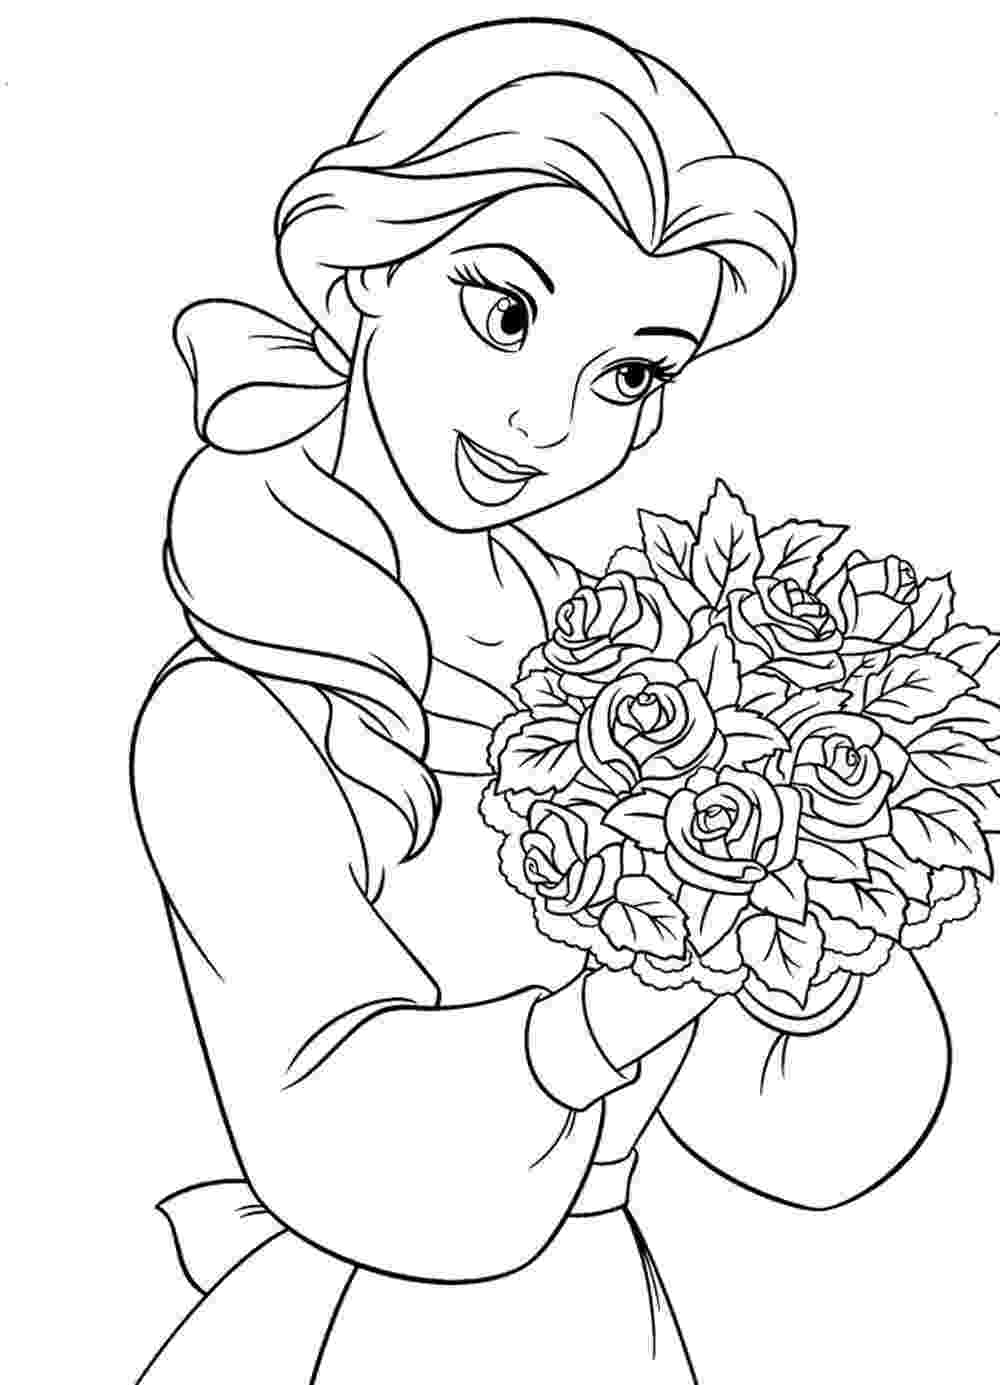 free detailed coloring pages detailed coloring pages for girls at getcoloringscom coloring pages free detailed